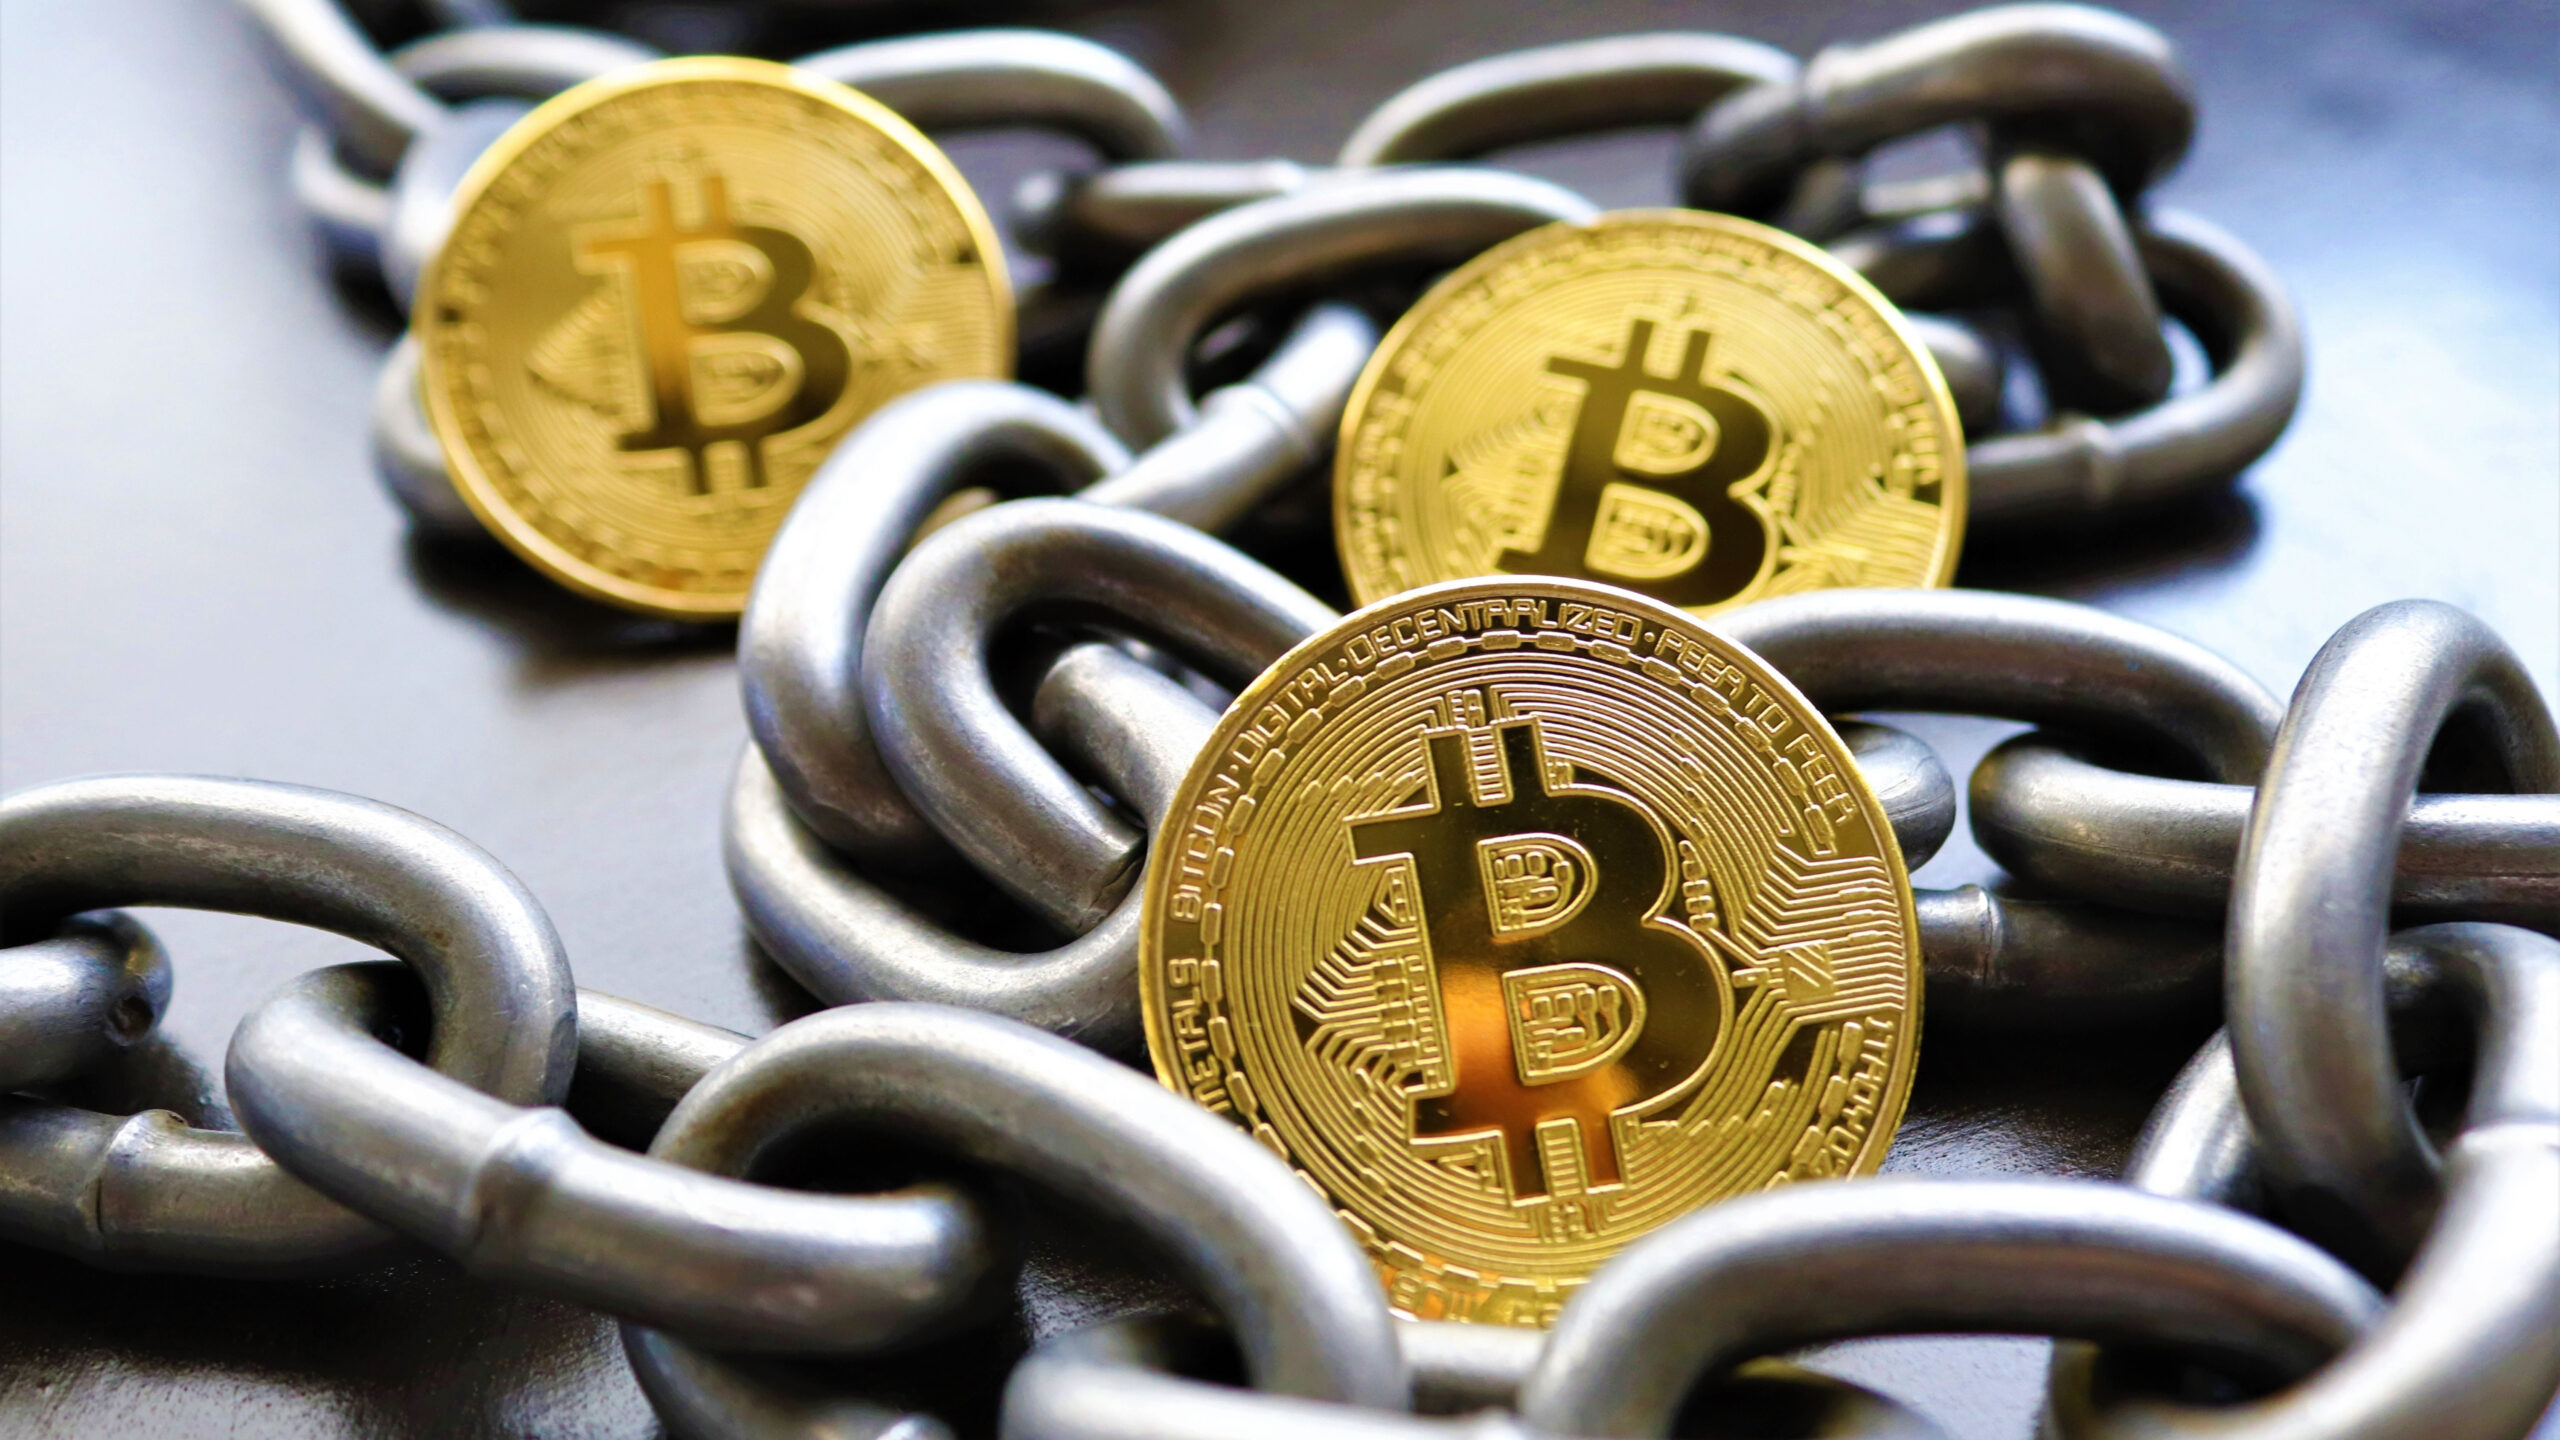 three gold coins, with bitcoin symbol, placed among iron chains.